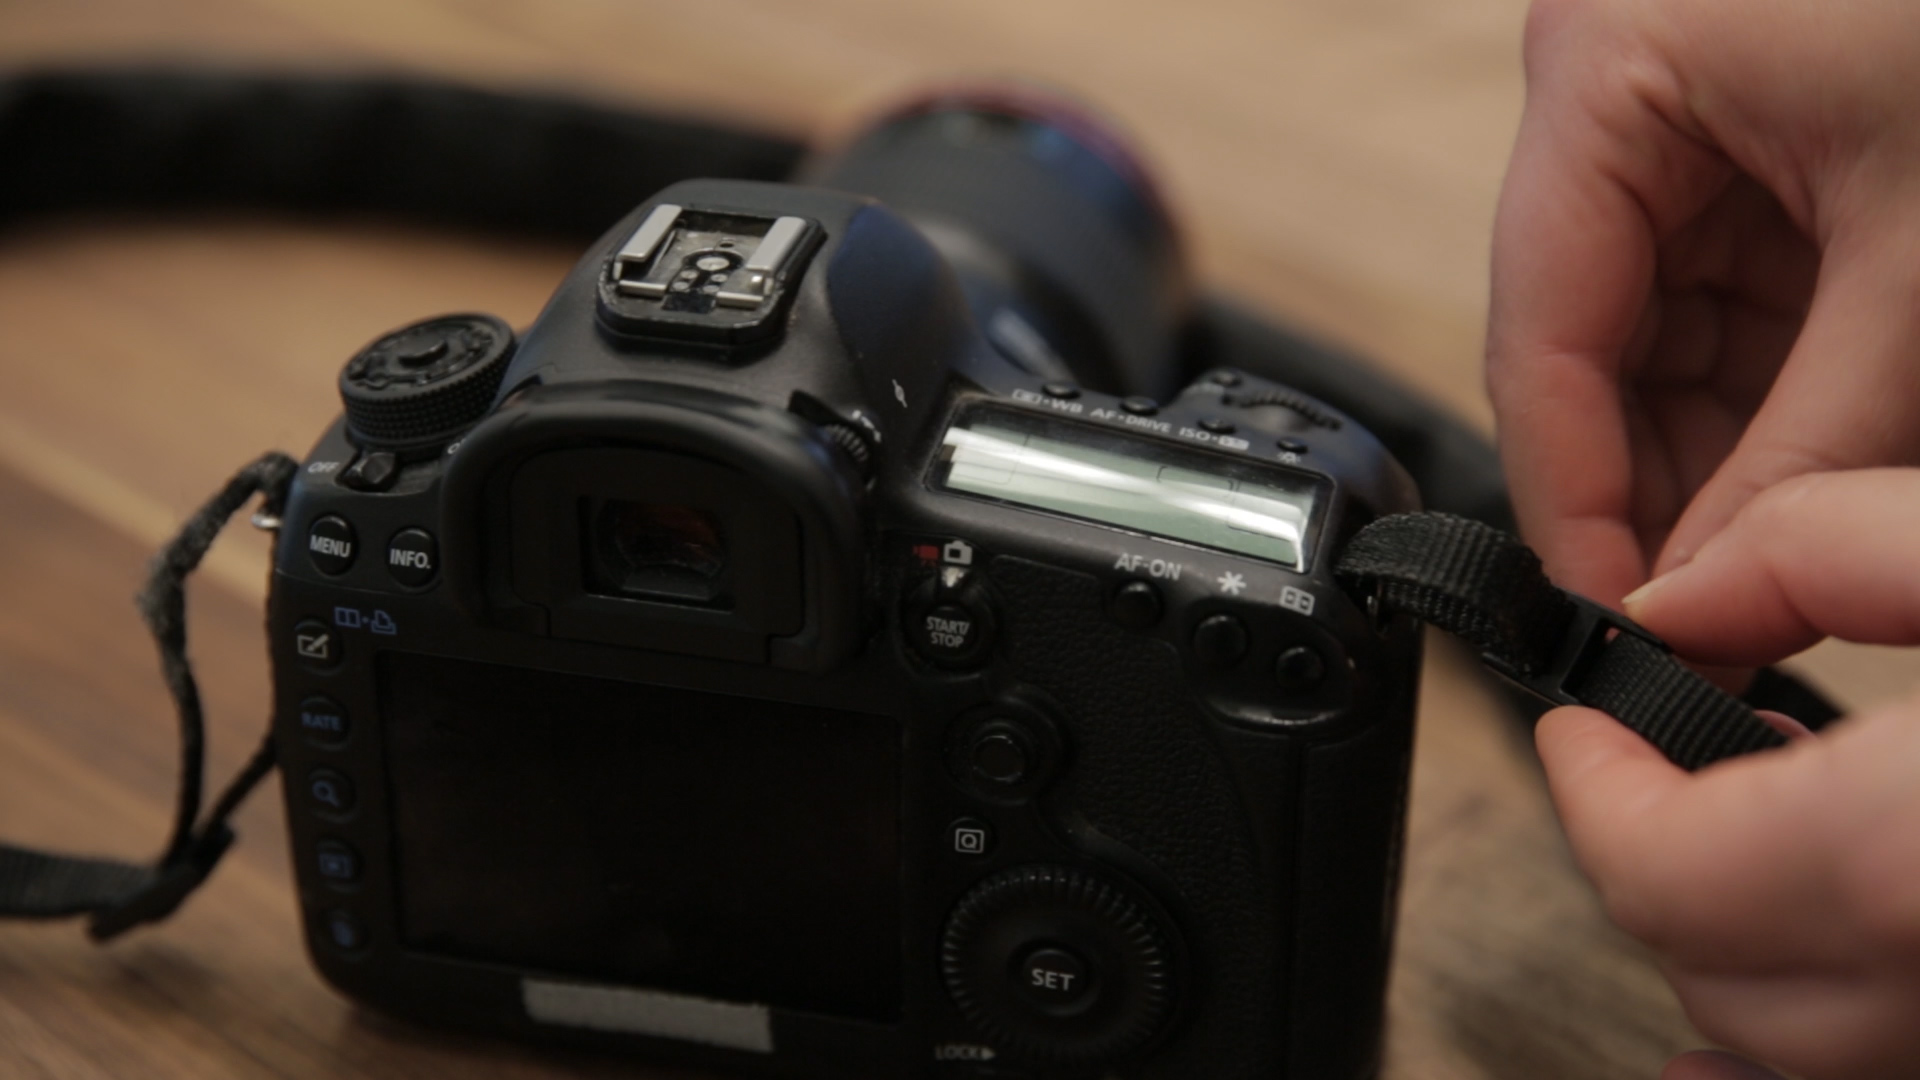 Video: Setup tips for your new camera